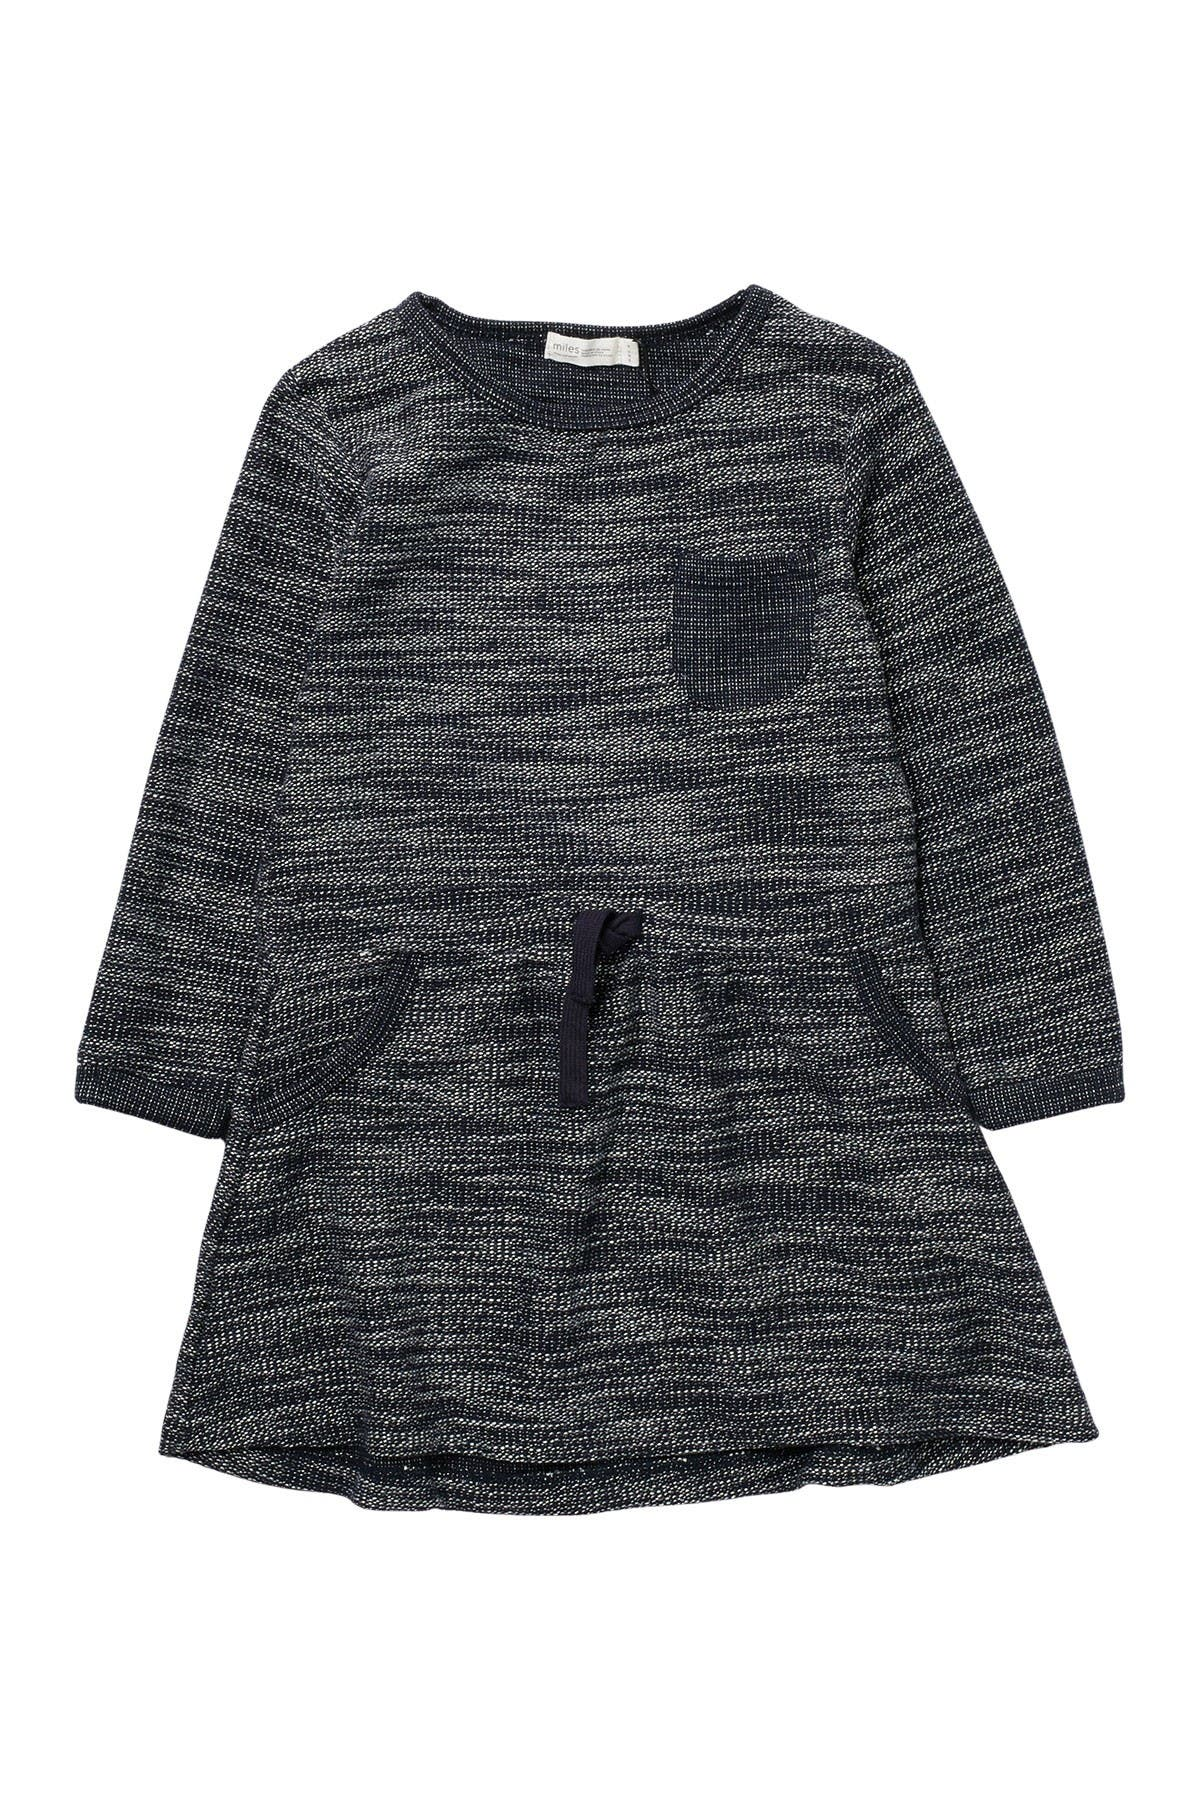 Image of MILES Long Sleeve Knit Dress